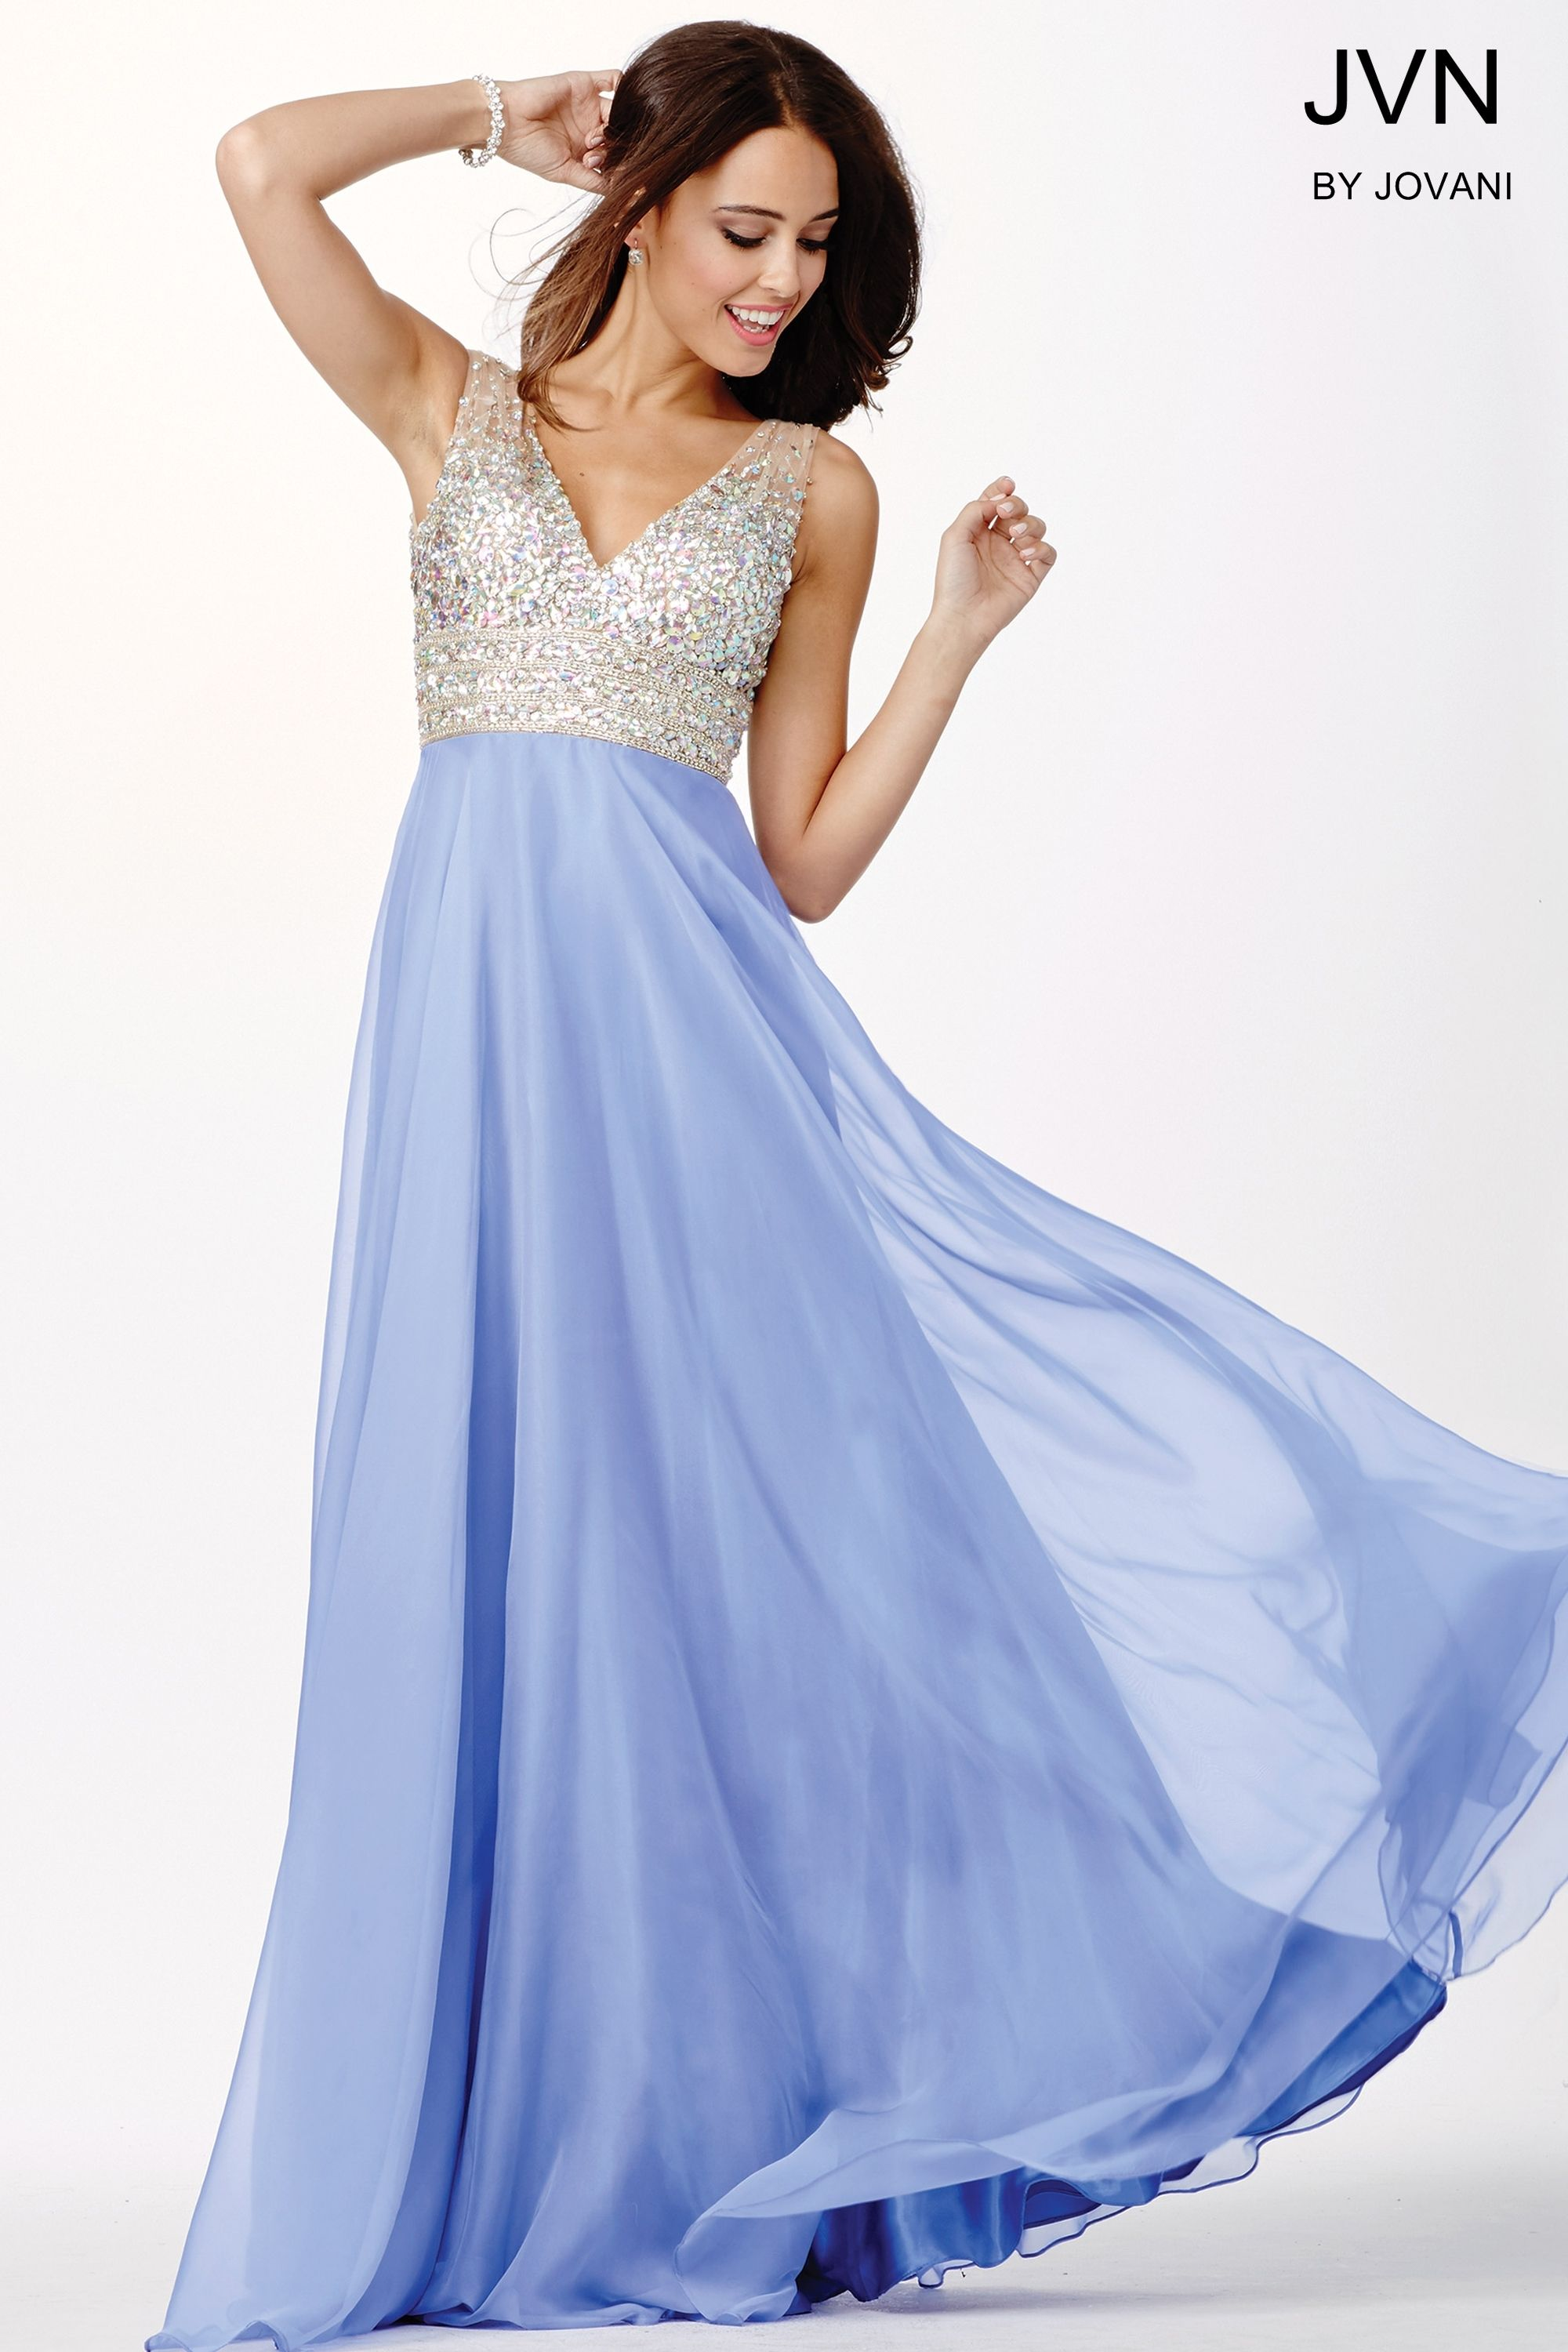 Pretty in periwinkle jvn 20437 prom dresses 2016 jvn jvn prom by jovani periwinkle chiffon prom dress ombrellifo Image collections